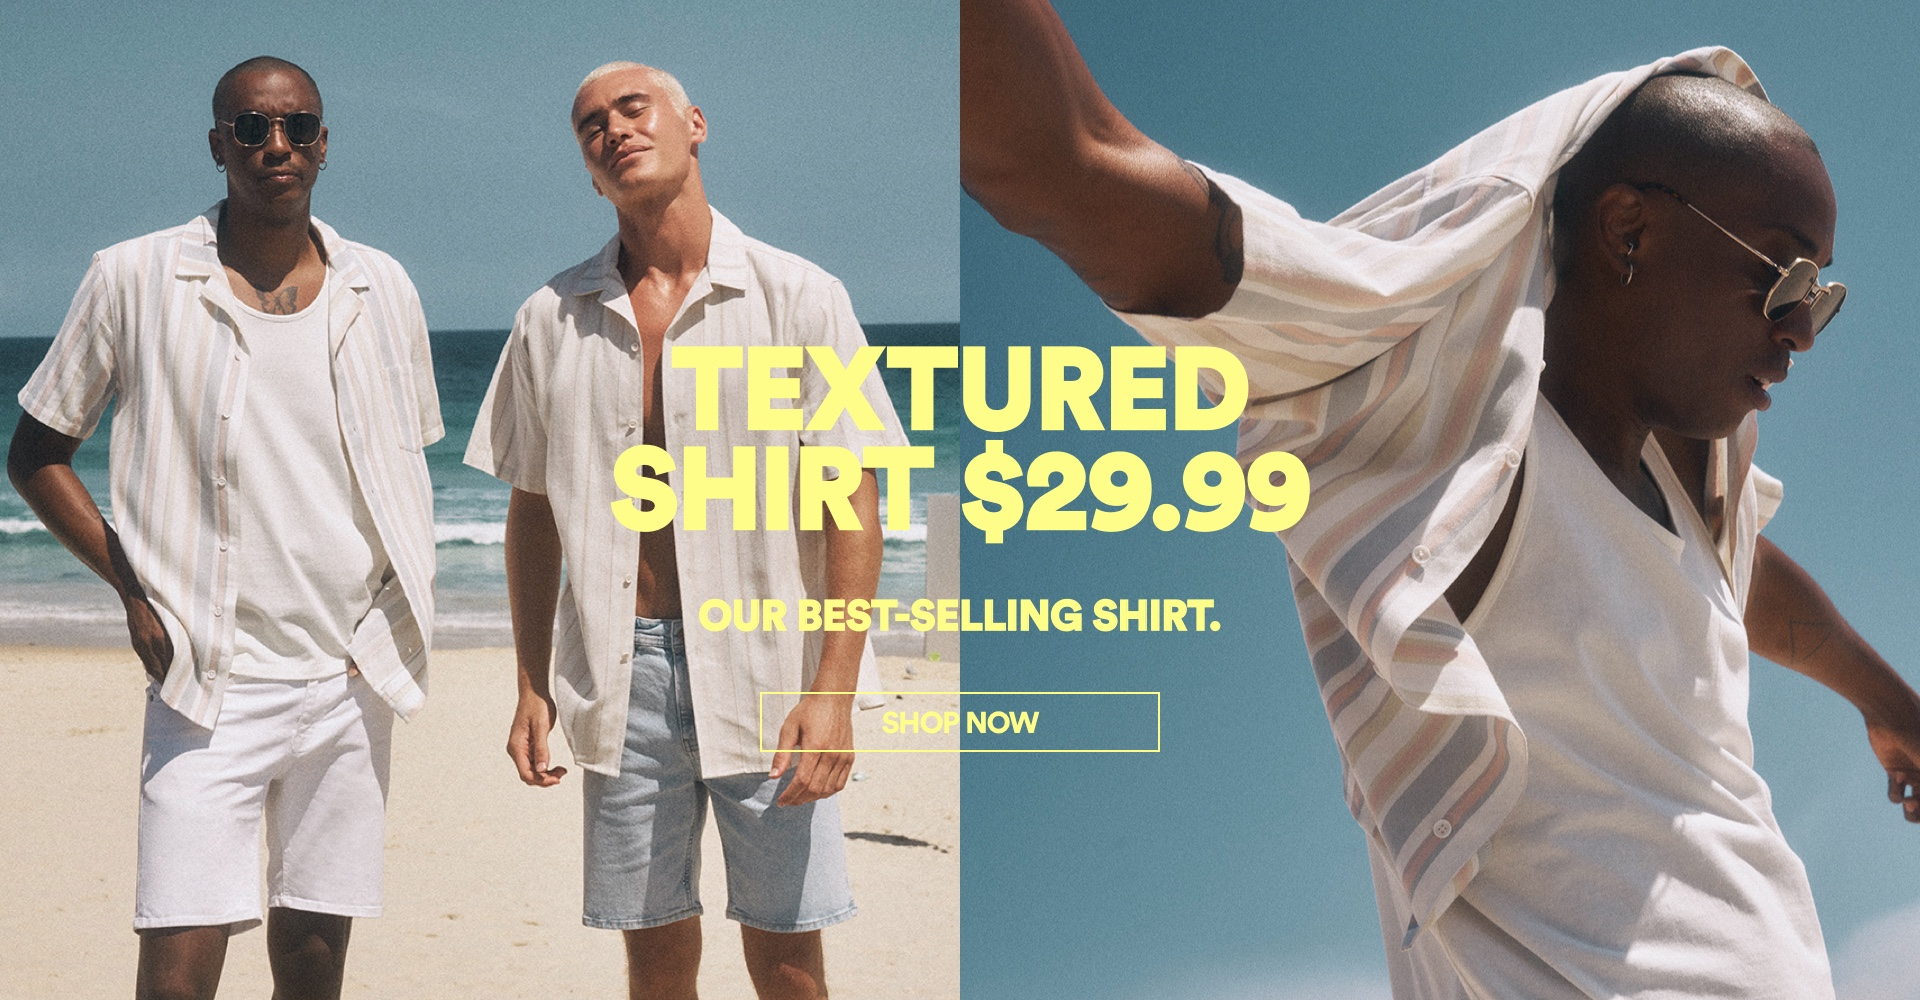 Textured shirt $29.99. Click to Shop Now.